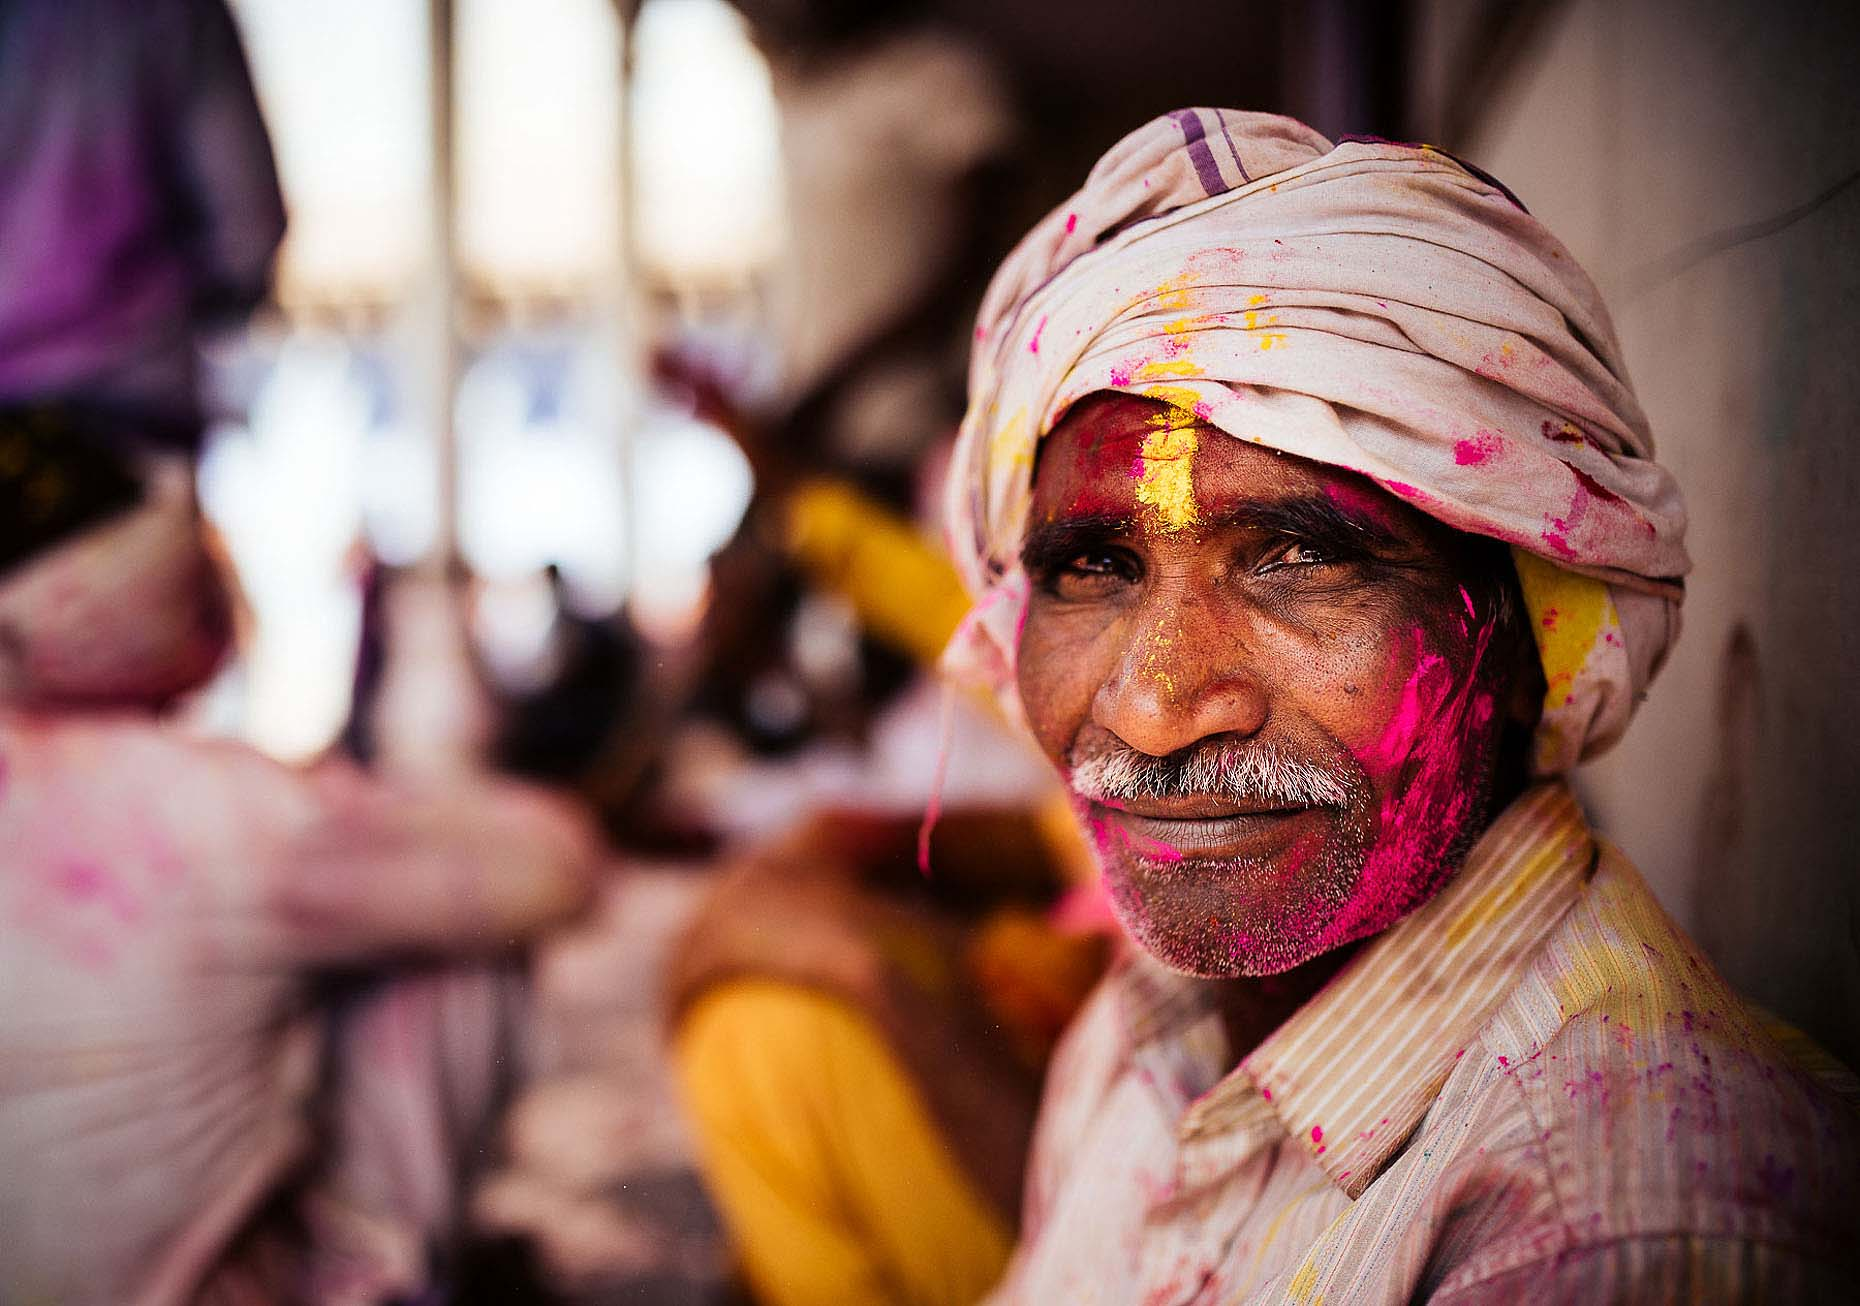 Portrait-Man-Turban-Indian-Holi-Festival-Colour-India-008